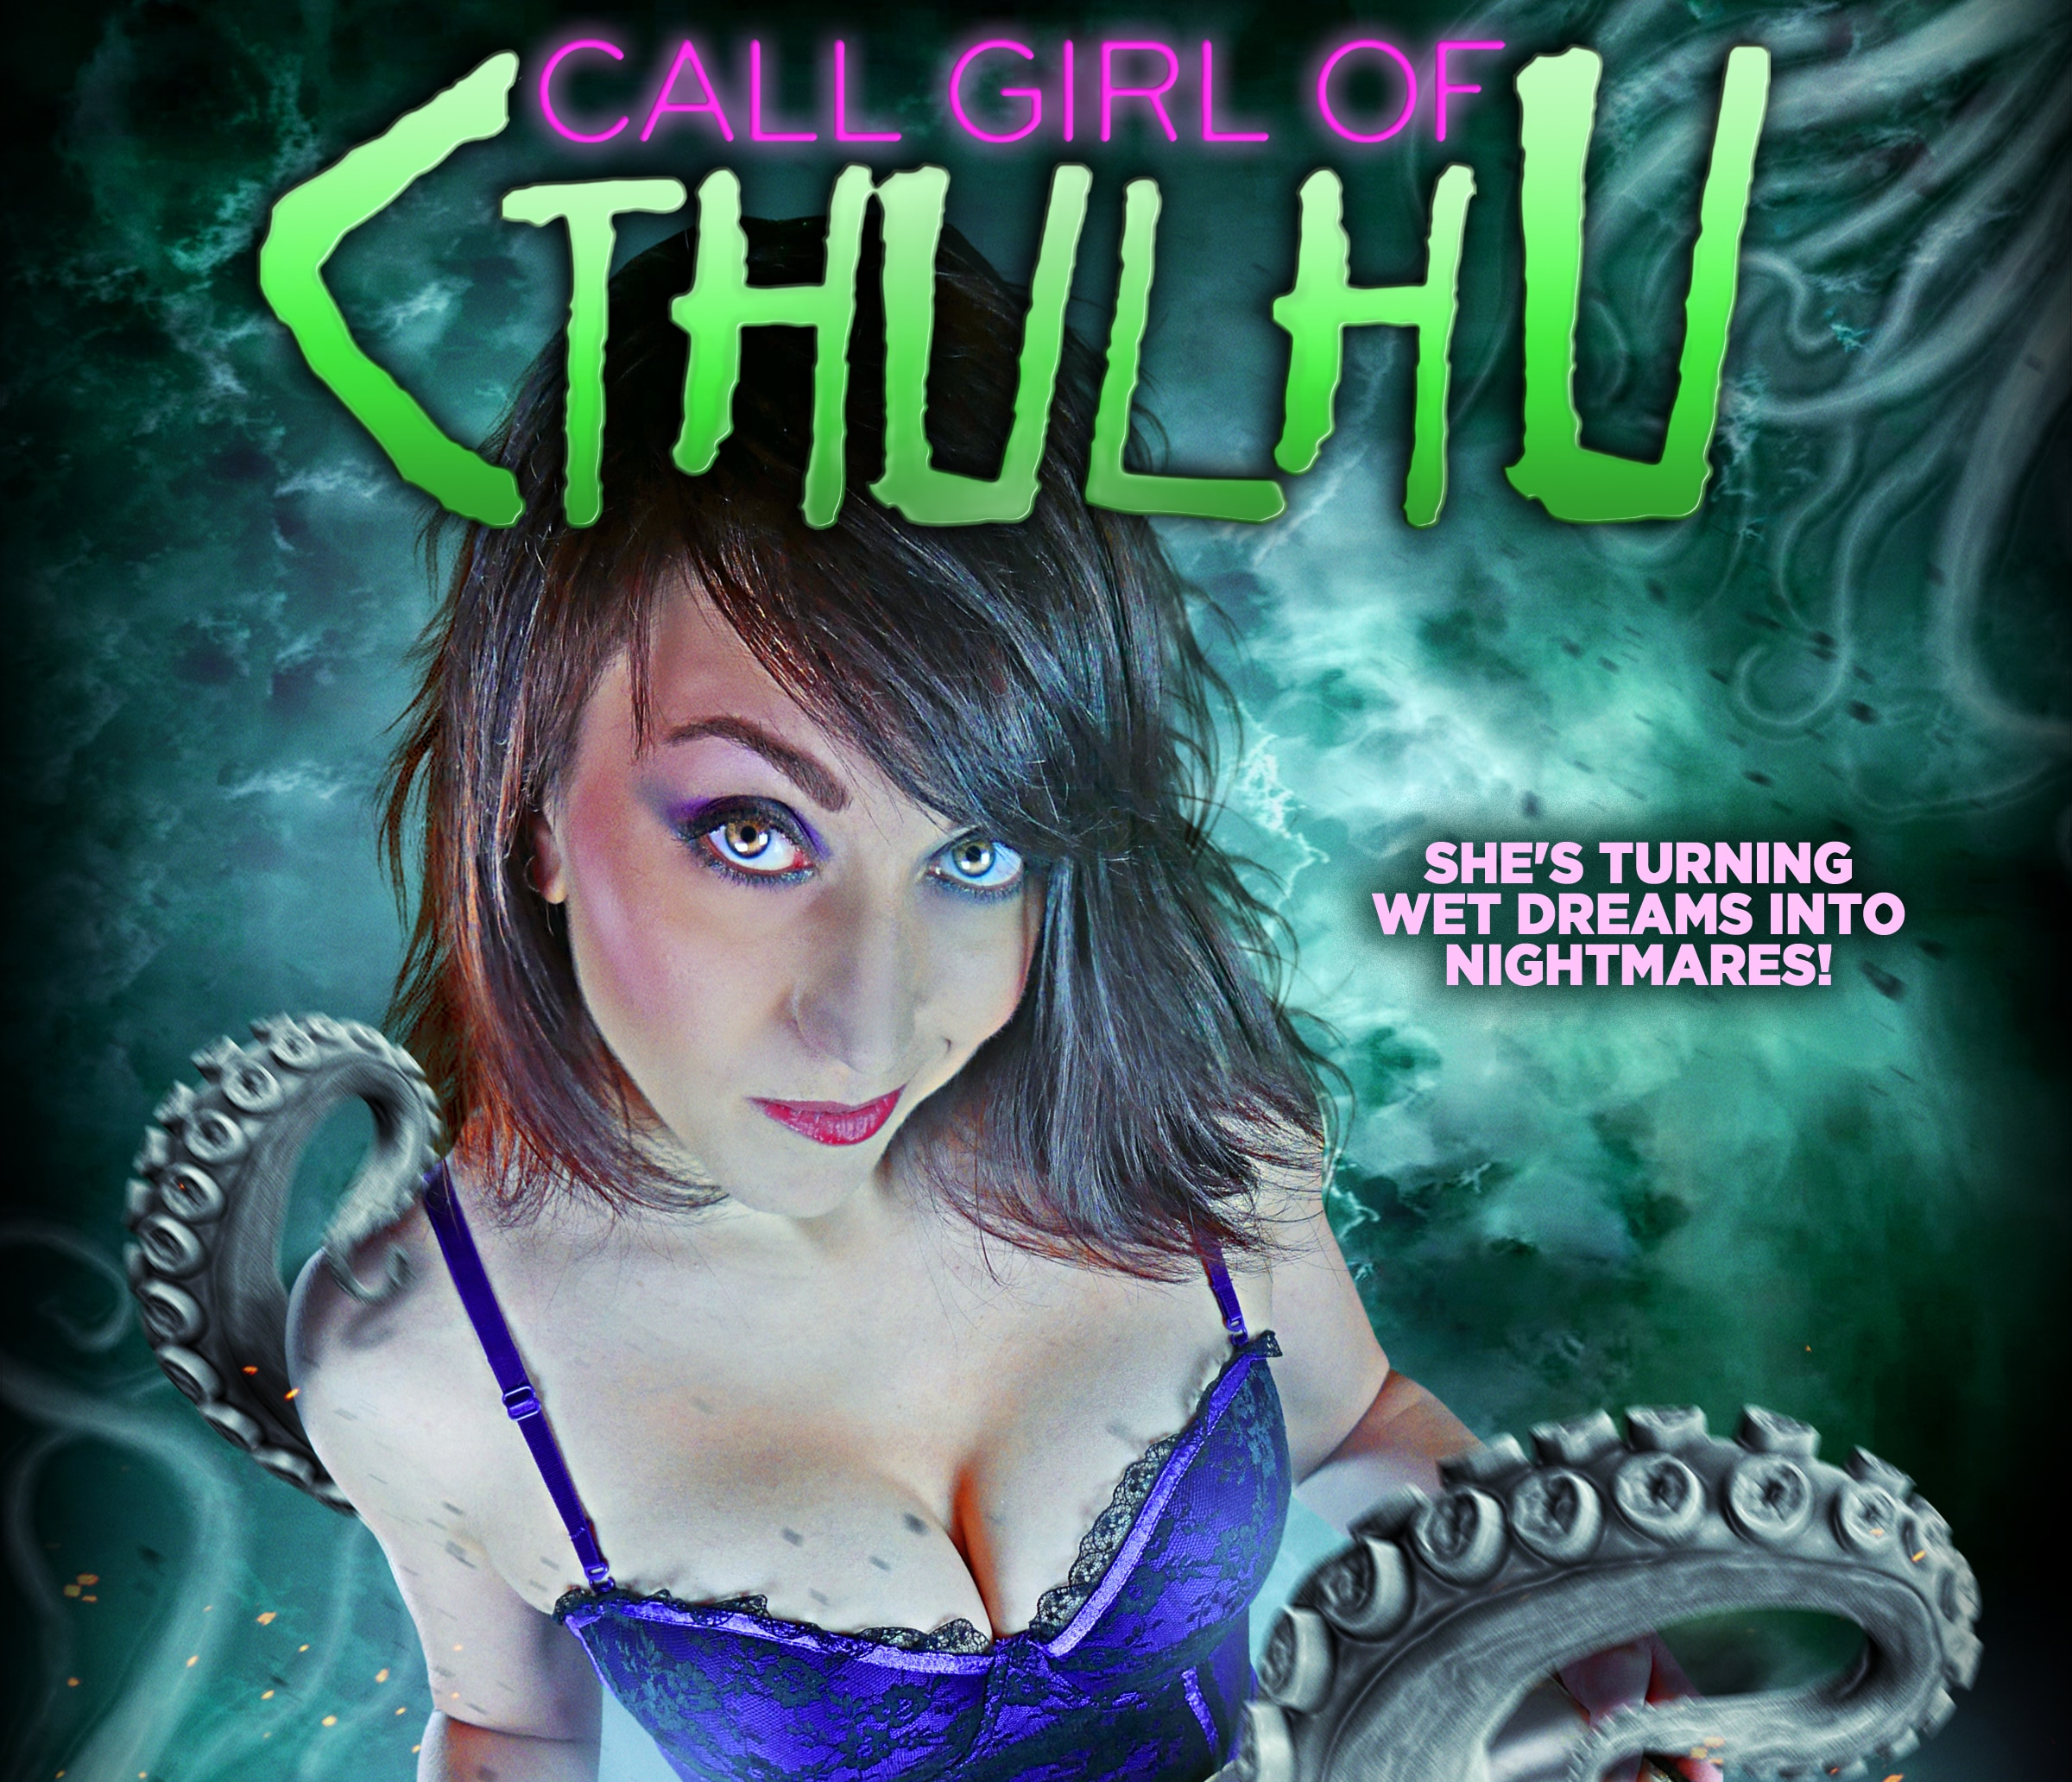 Call Girl of Cthulhu Rings Up a New Trailer and Artwork ...